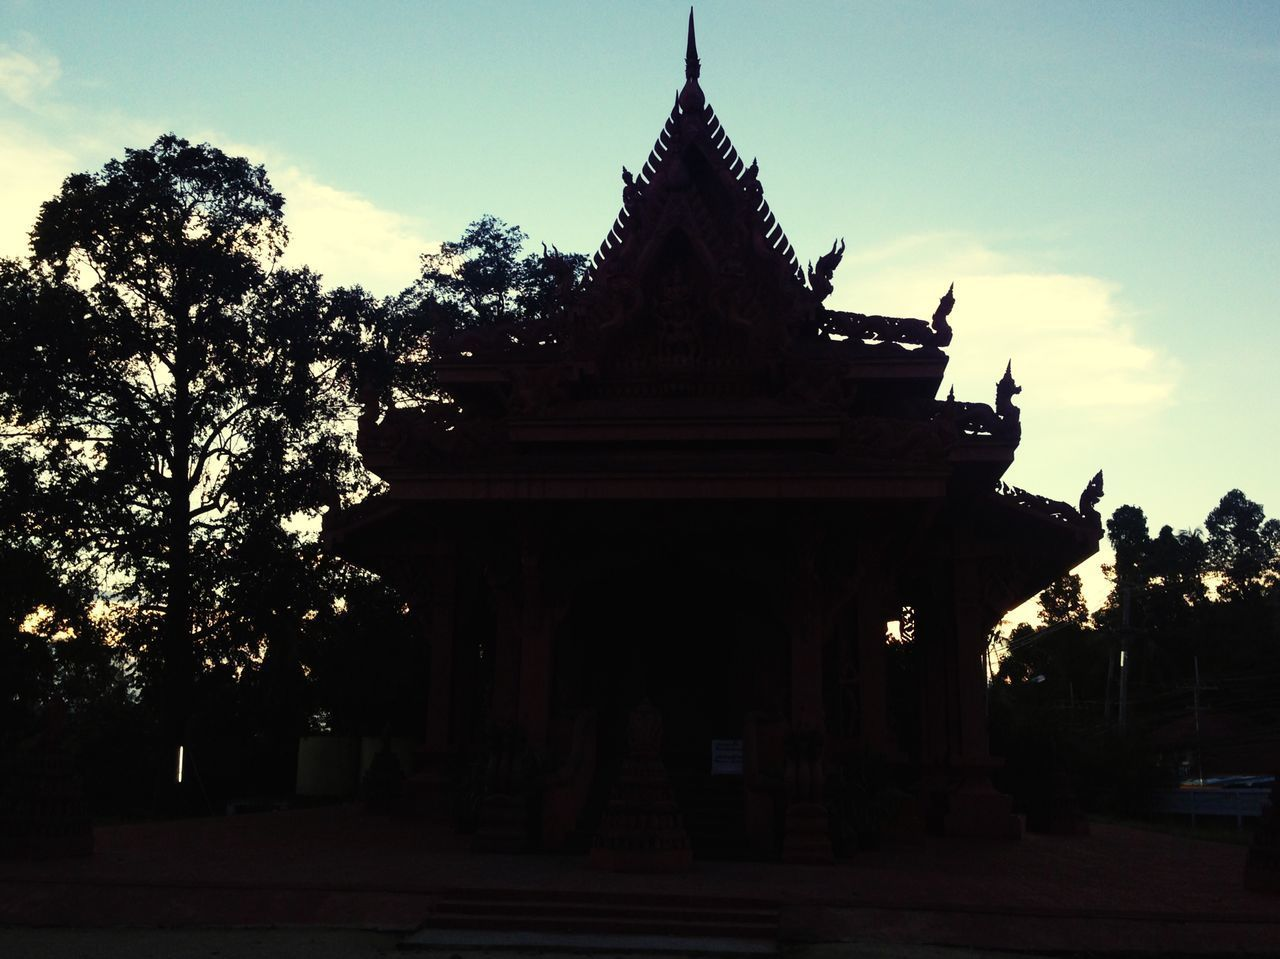 Thai Temple Temple Thailand Thai Budhism Architecture Tree Silhouette Built Structure Outdoors Sky No People Sunlight Building Exterior Day Nature Statue Sculpted